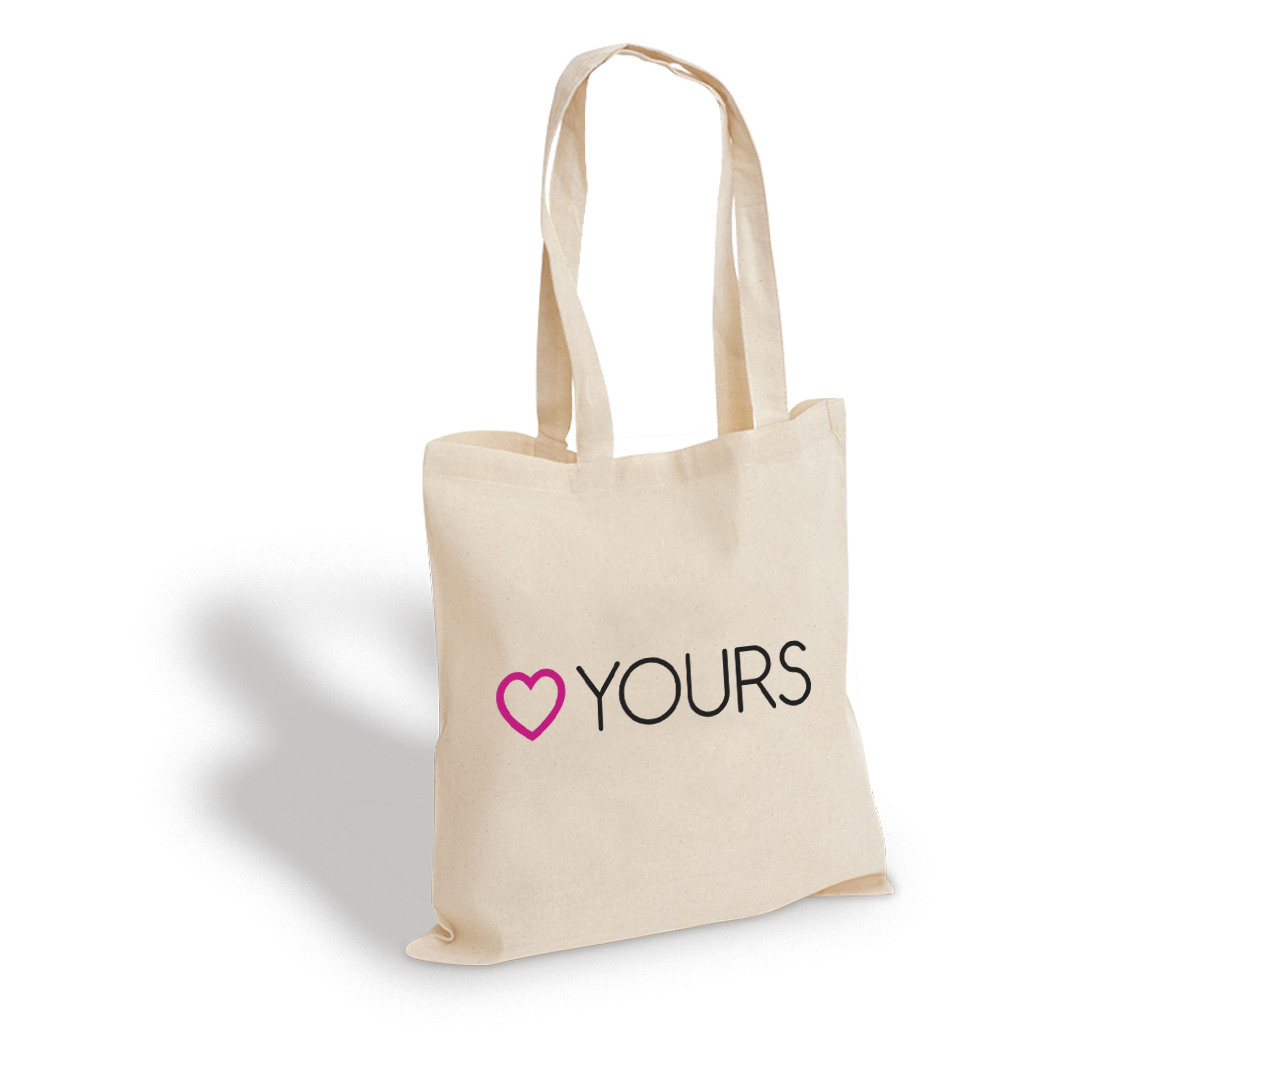 Yours Clothing Side 1 - Cotton Bag